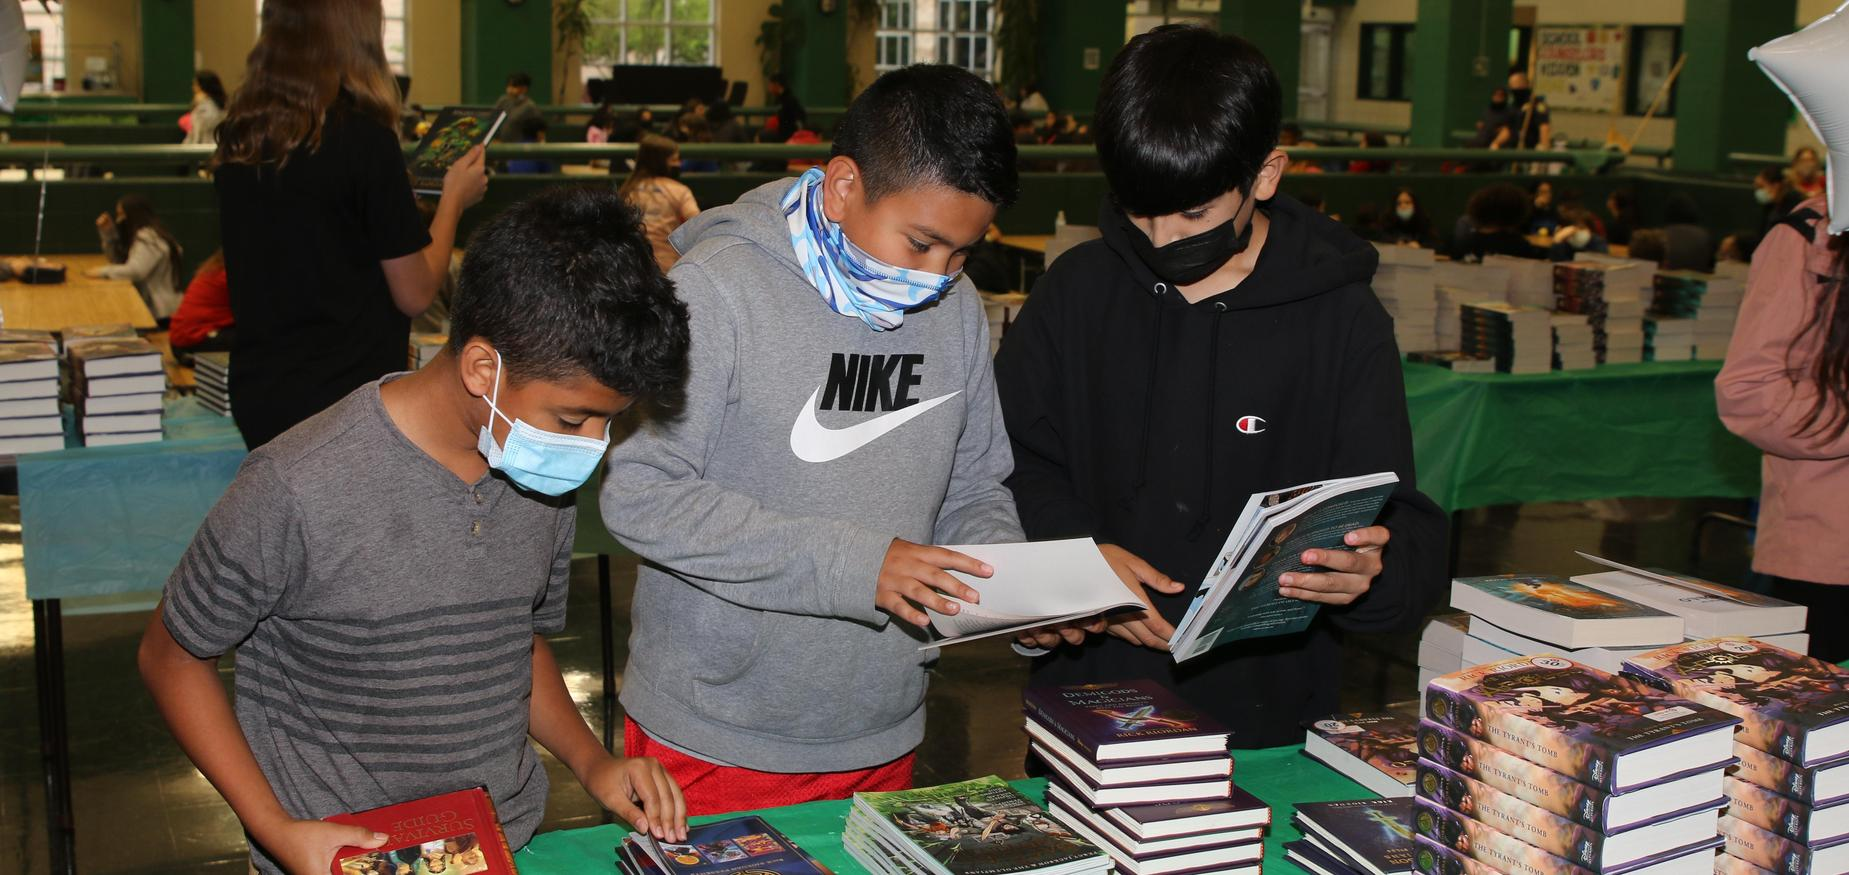 3 boys looking at books.